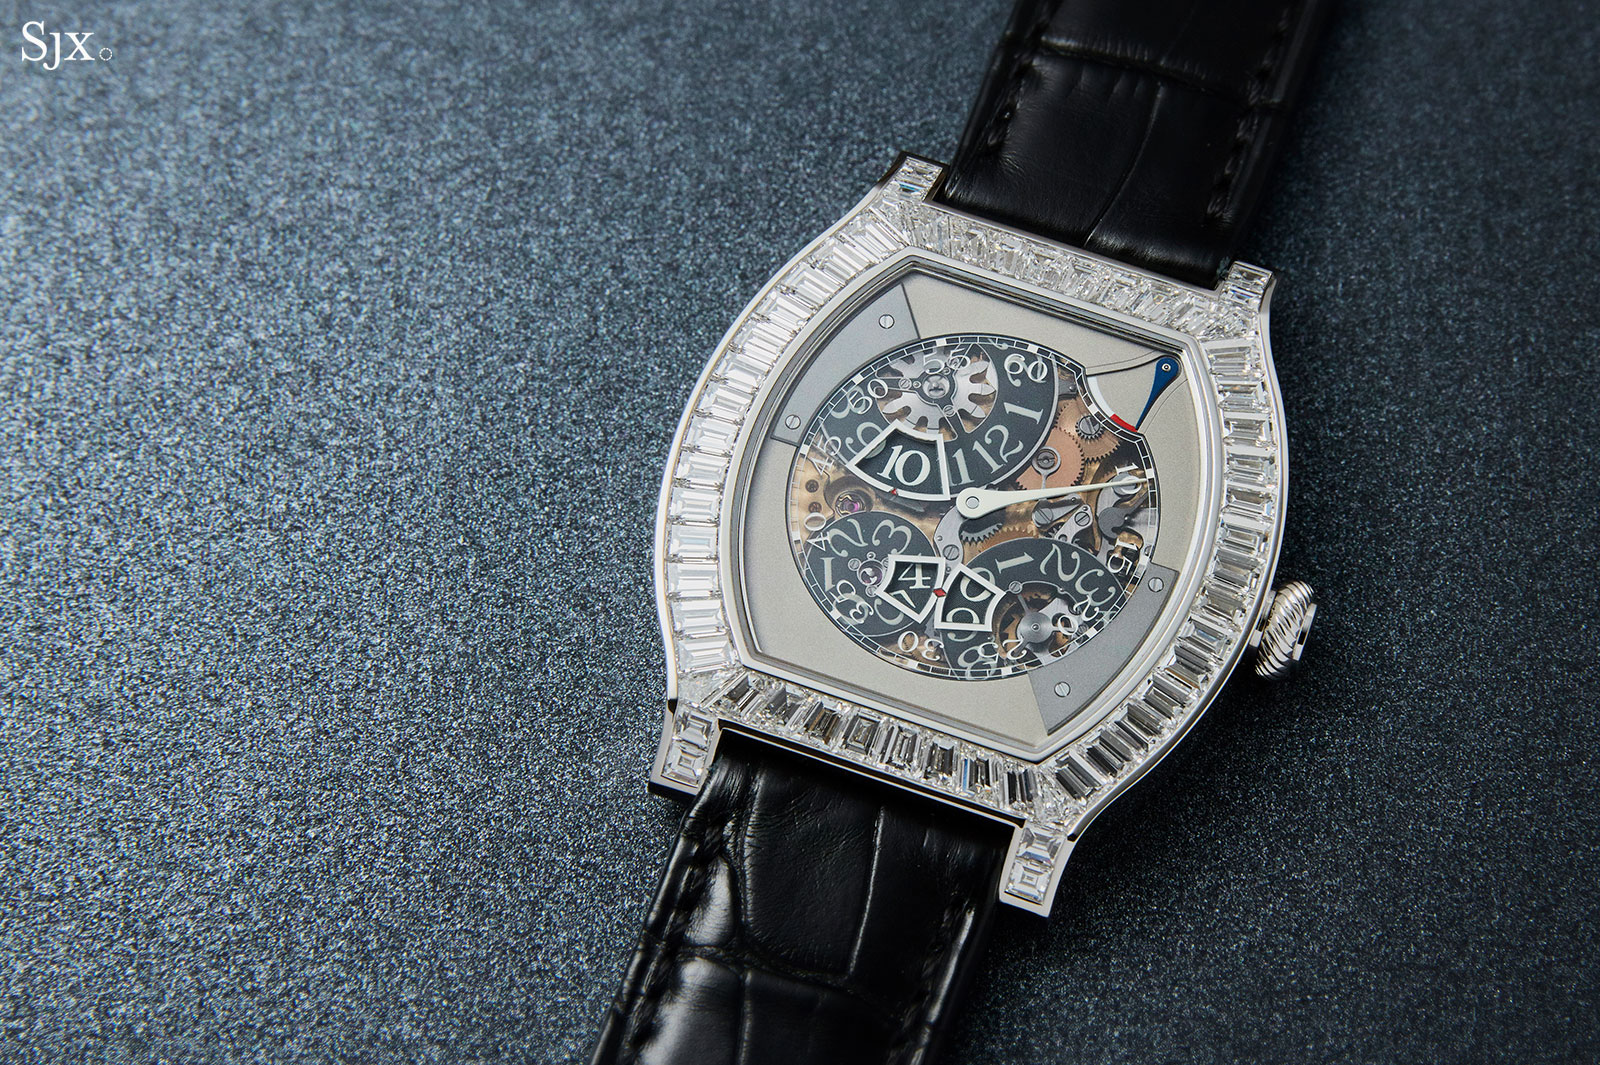 FP Journe Vagabondage III diamonds 1